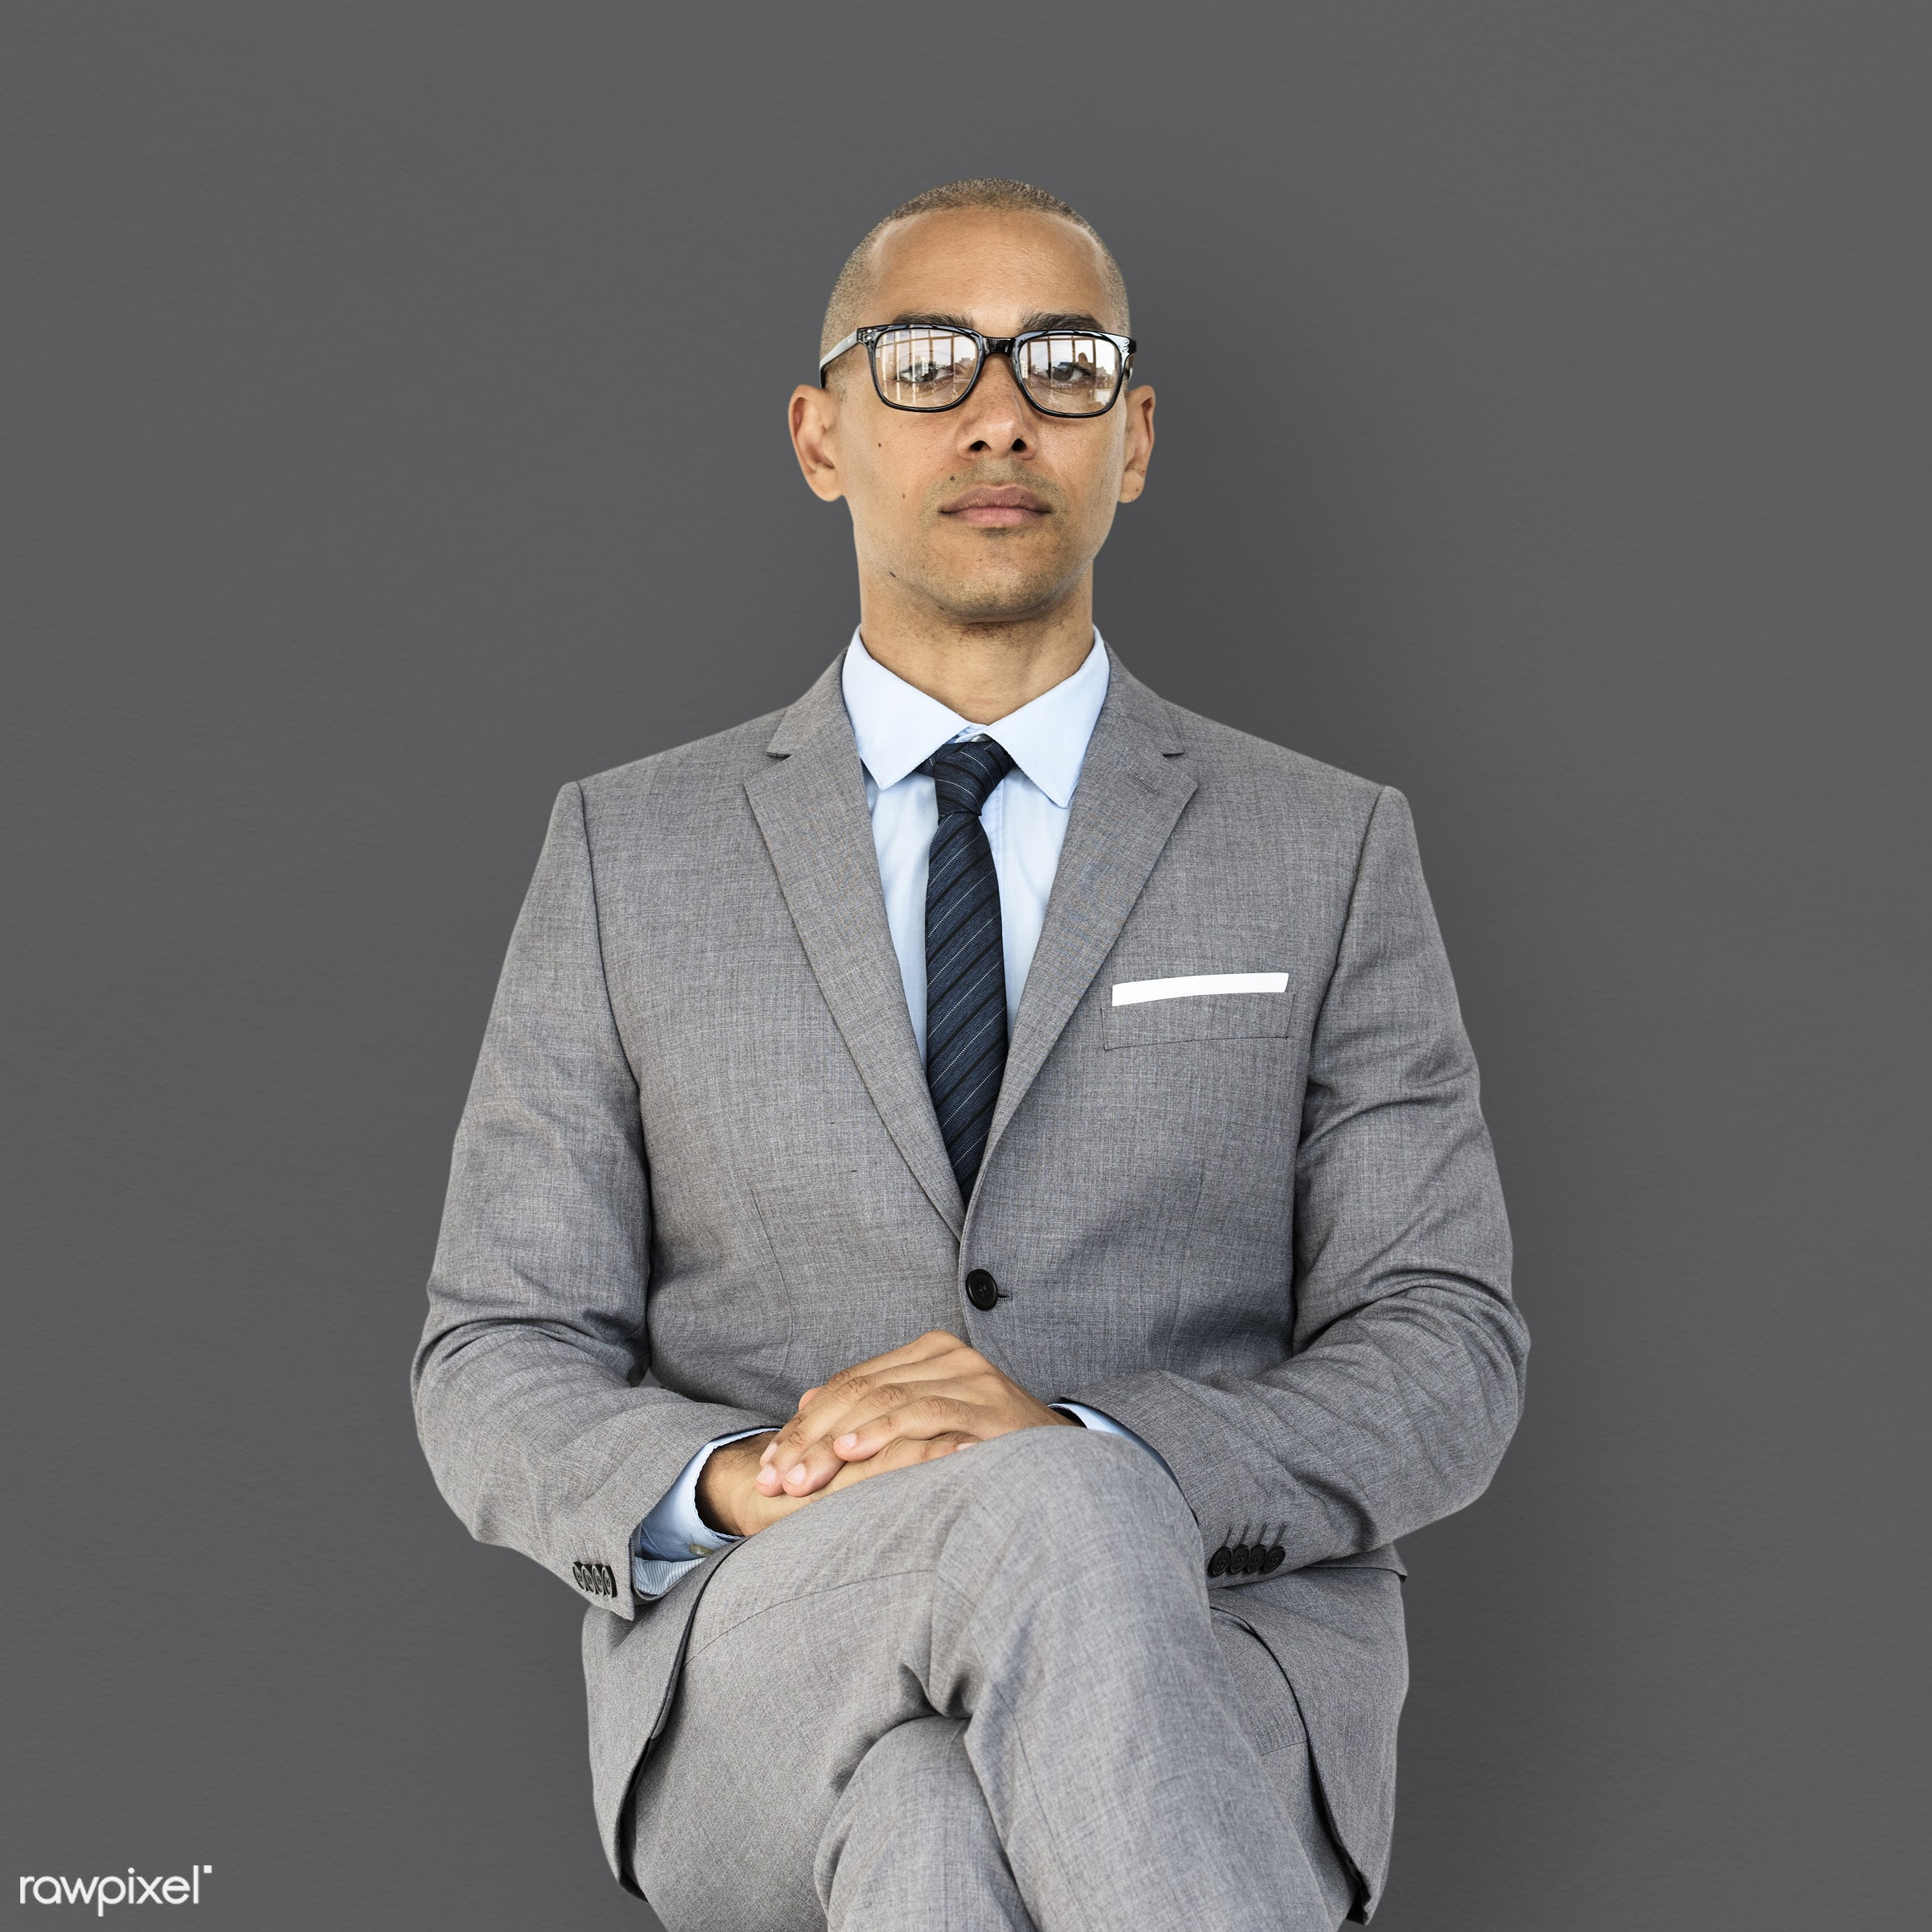 expression, studio, person, business wear, people, business, pose, smart looking, focused, serious, black, formal wear,...